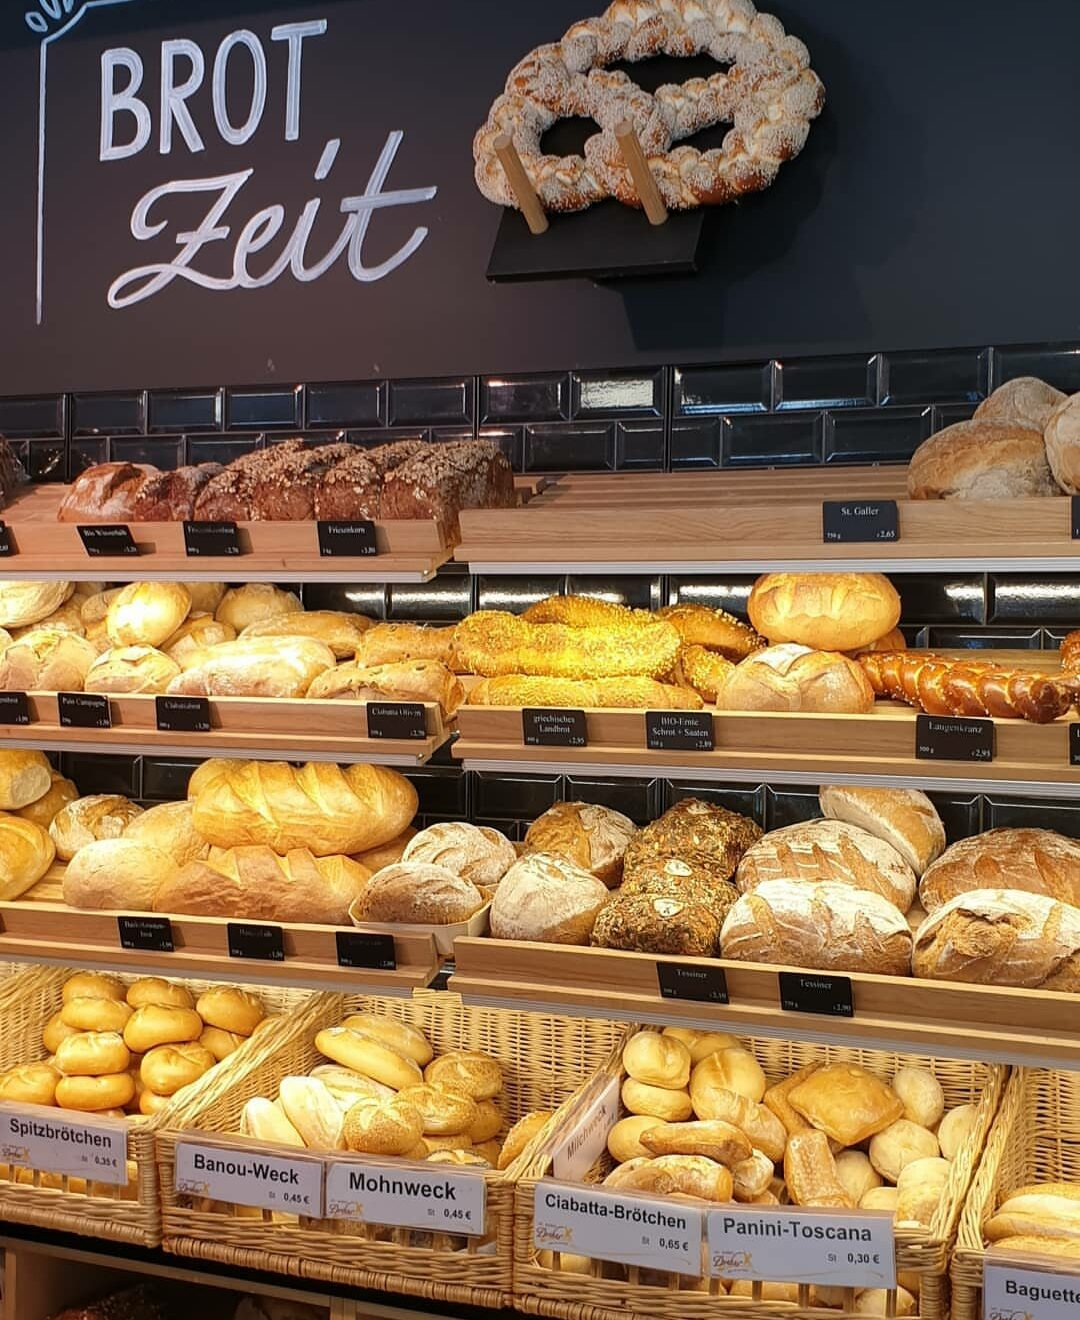 Shelfs with bread loaves and rolls in a German bakery